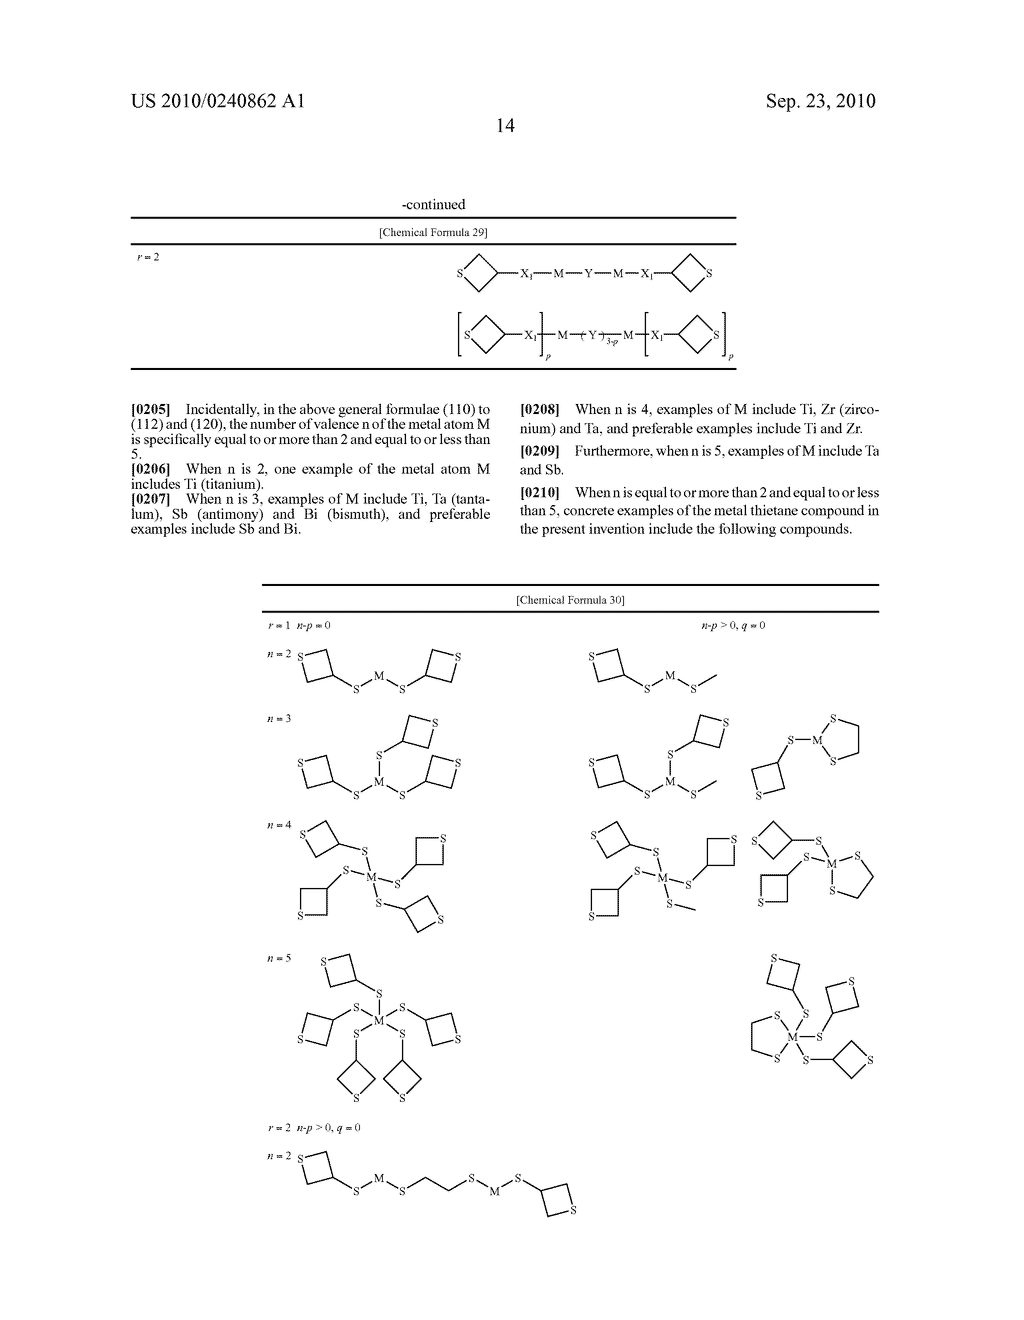 METAL THIETANE COMPOUND, POLYMERIZABLE COMPOSITION CONTAINING THE COMPOUND, RESIN AND USE OF THE RESIN - diagram, schematic, and image 15